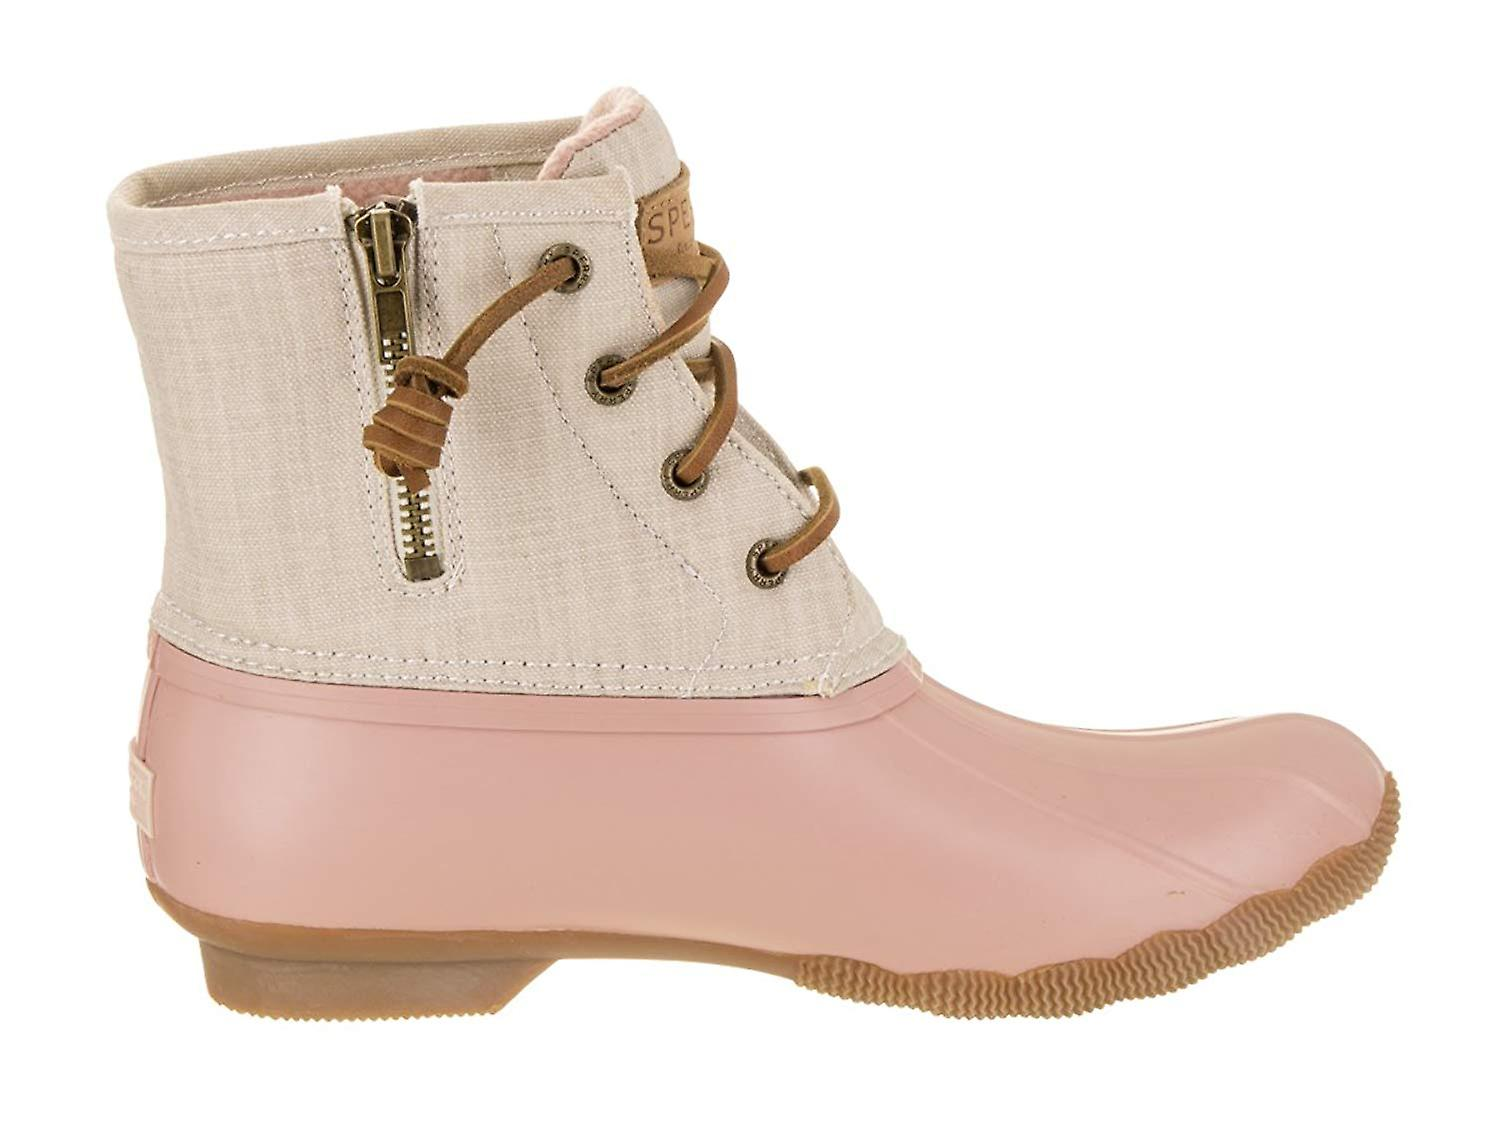 Sperry Womens Saltwater Canvas Almond Toe Ankle Cold Weather Boots Q4WRi